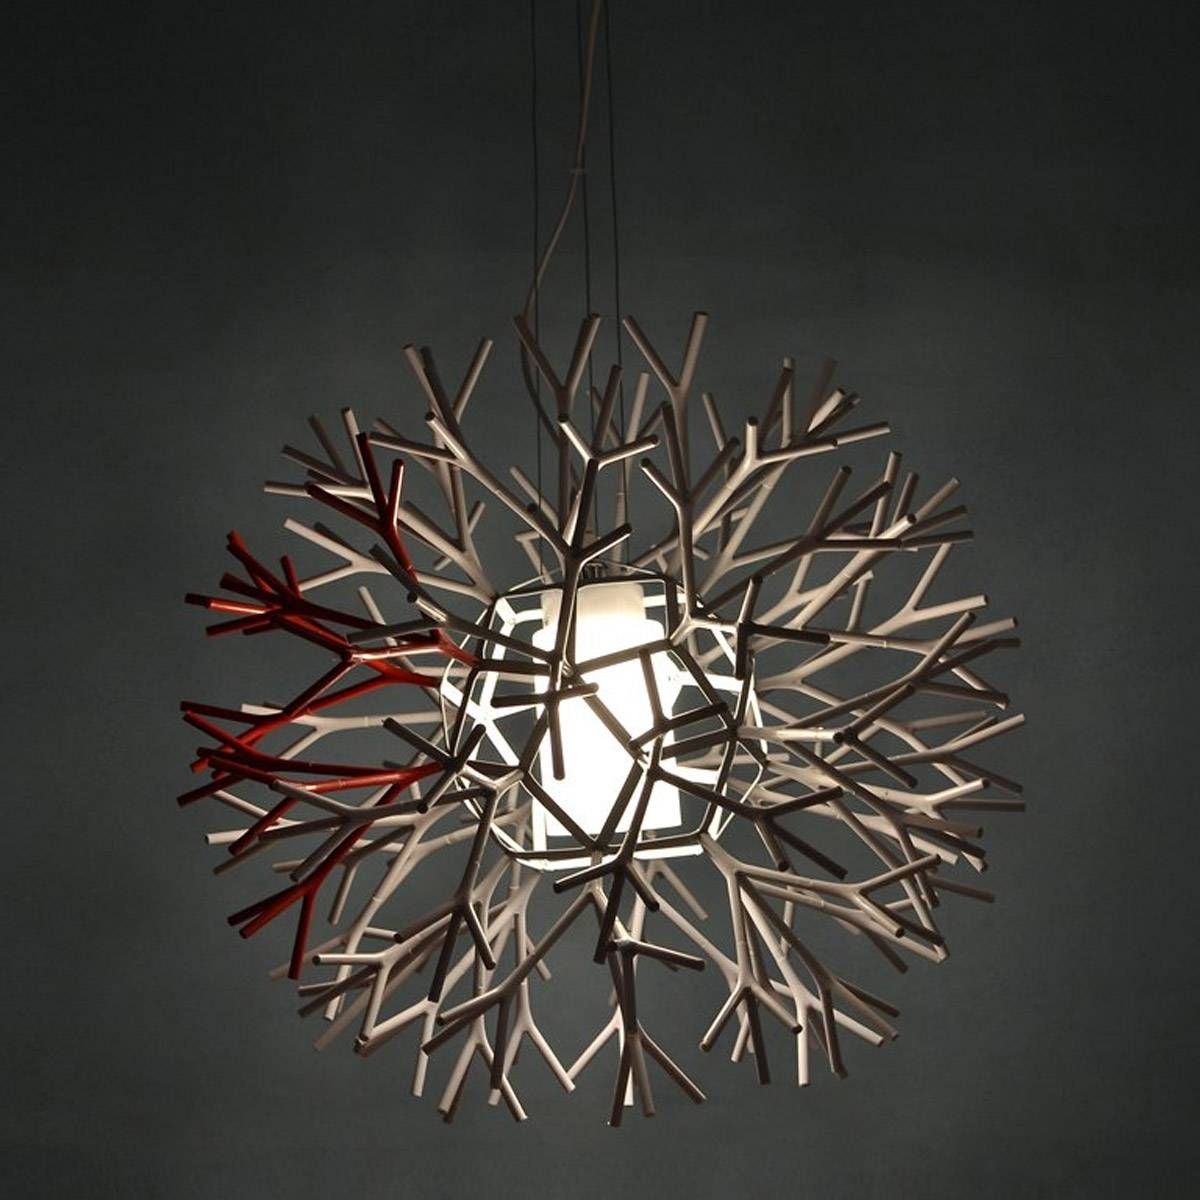 Online Buy Wholesale Coral Pendant Light From China Coral Pendant in Coral Pendant Lights (Image 10 of 15)